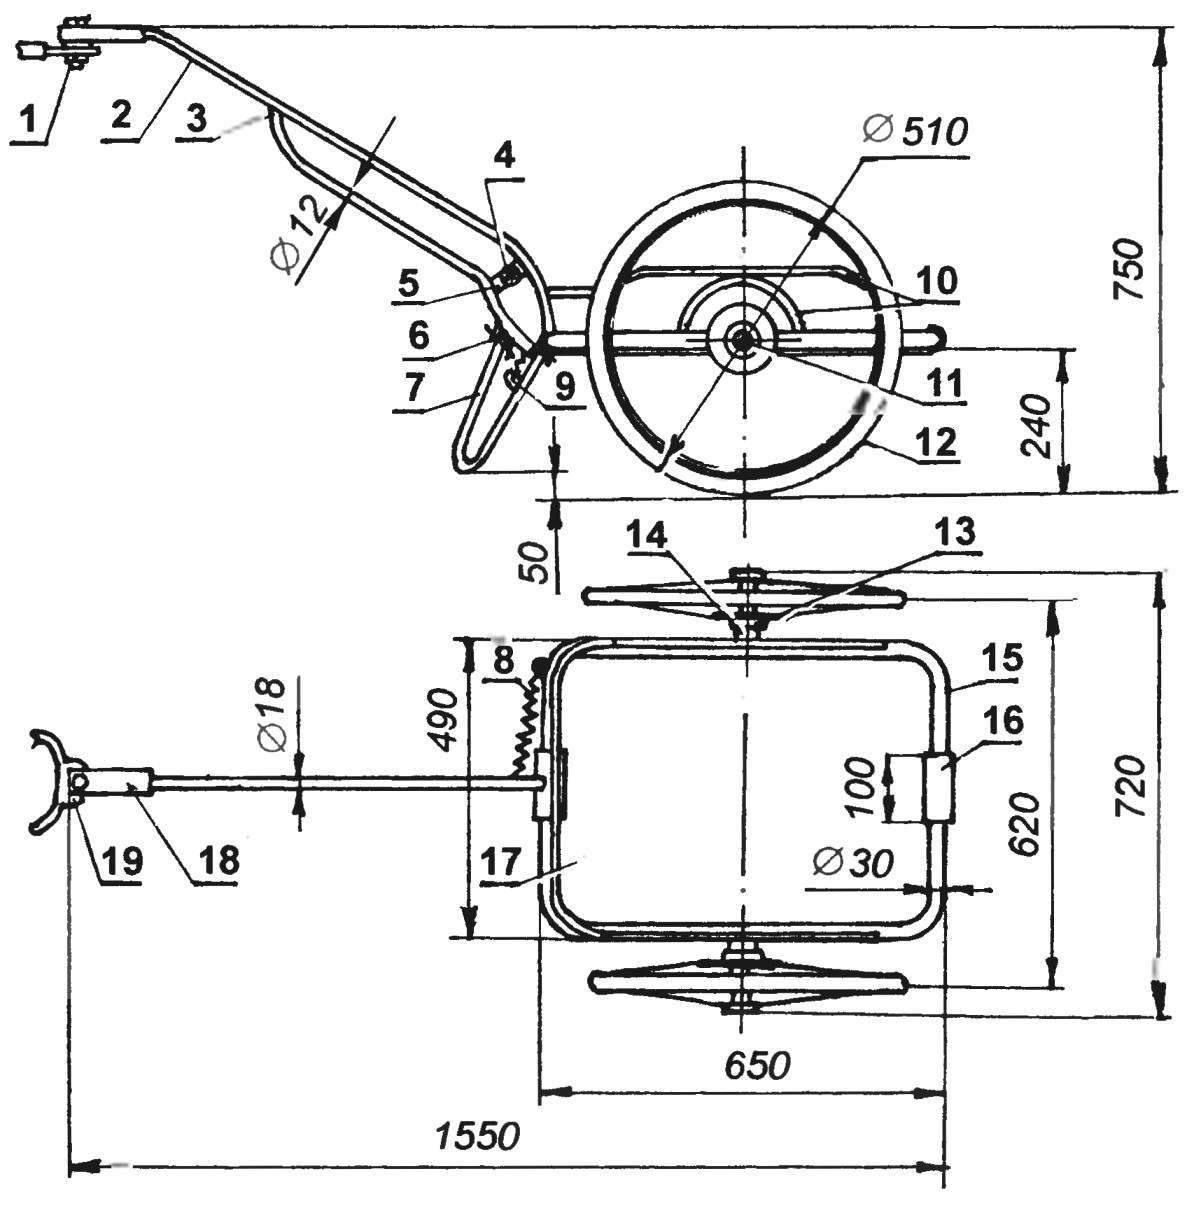 The layout of the car-trailer